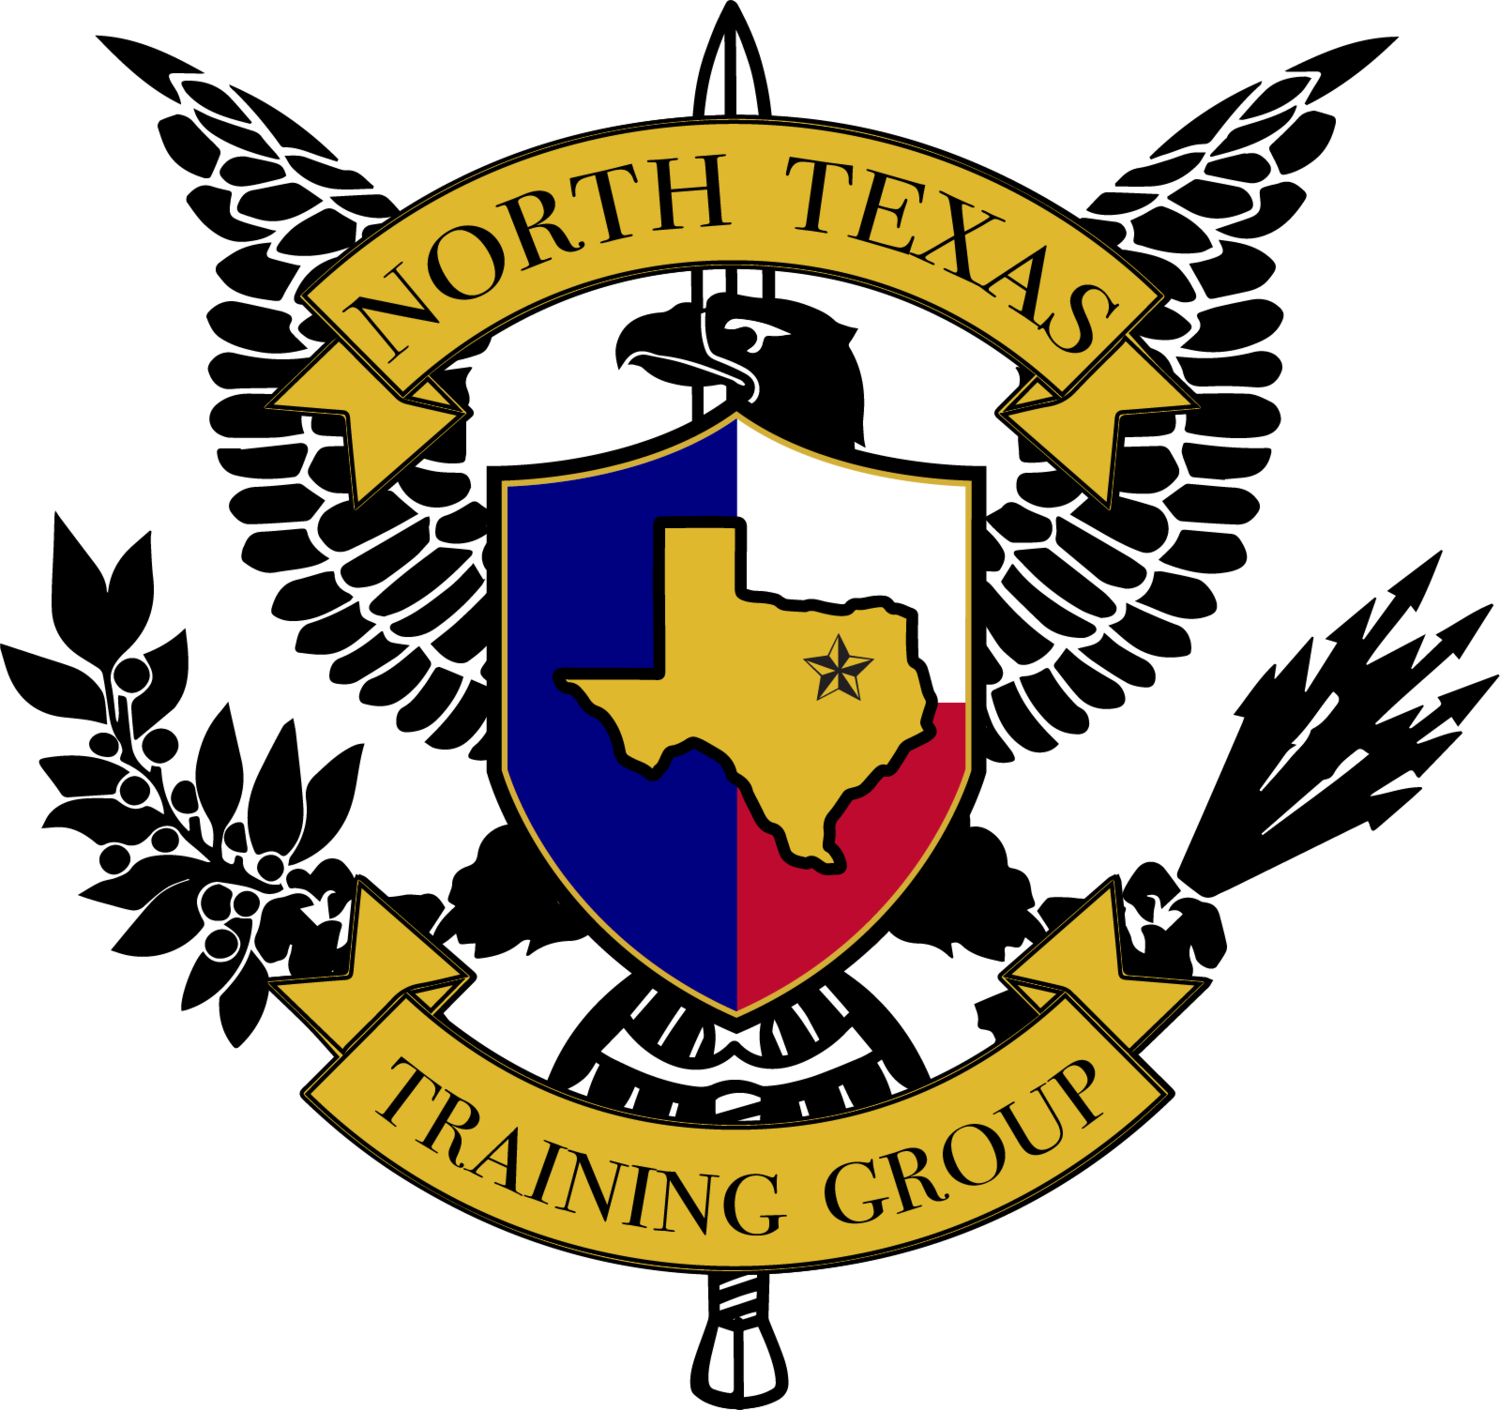 North Texas Training Group